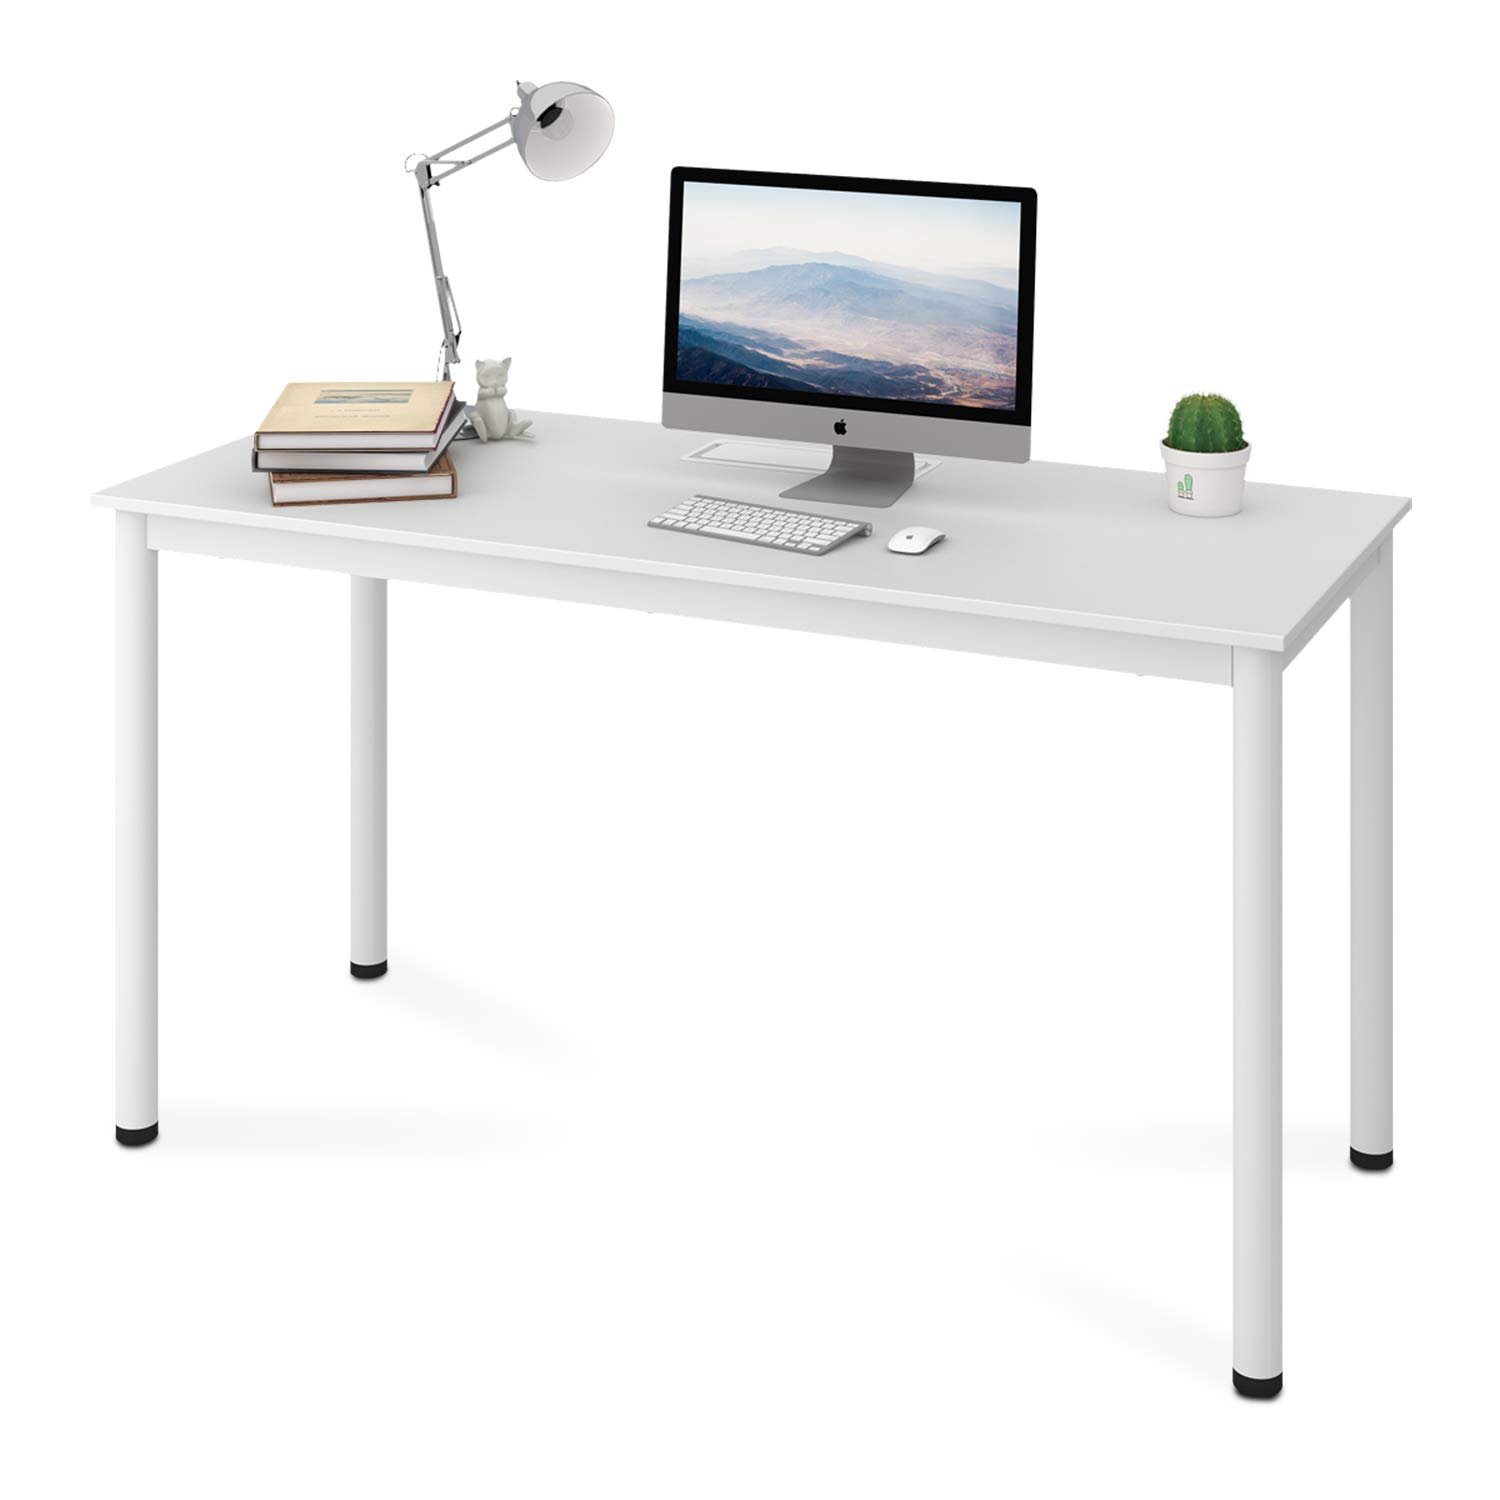 DEVAISE 55'' Modern Simple Style Computer Desk, PC Laptop Study Table with Cable Management, Workstation for Home Office by DEVAISE